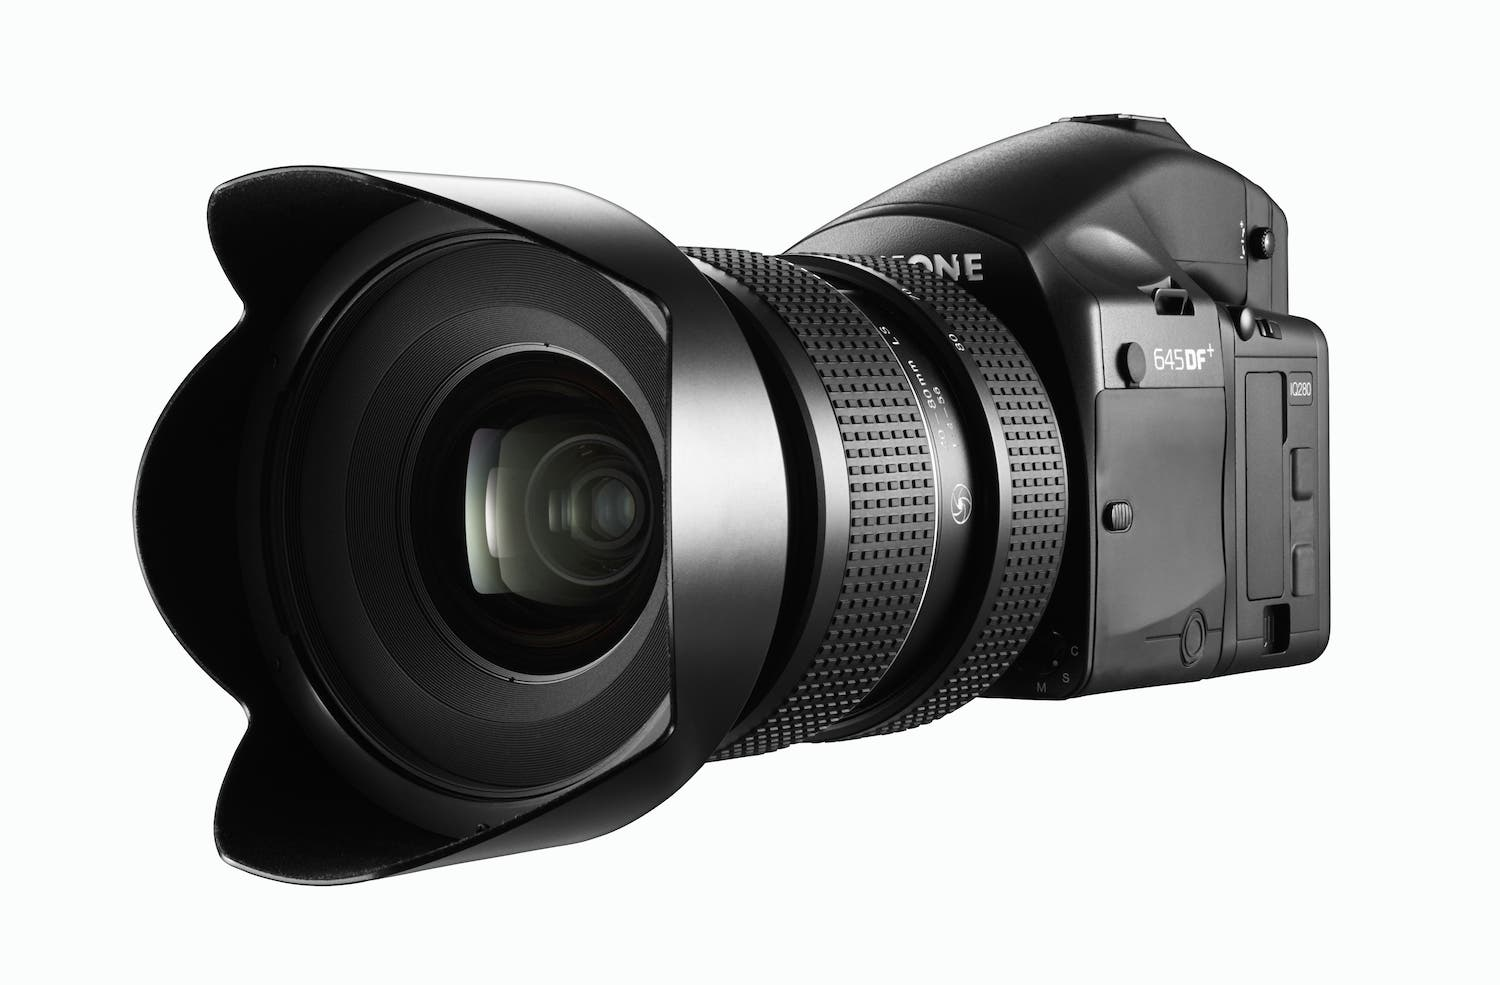 Phase One Introduces 40-80mm Wide-Angle Zoom Lens with Leaf Shutter for its 645 System